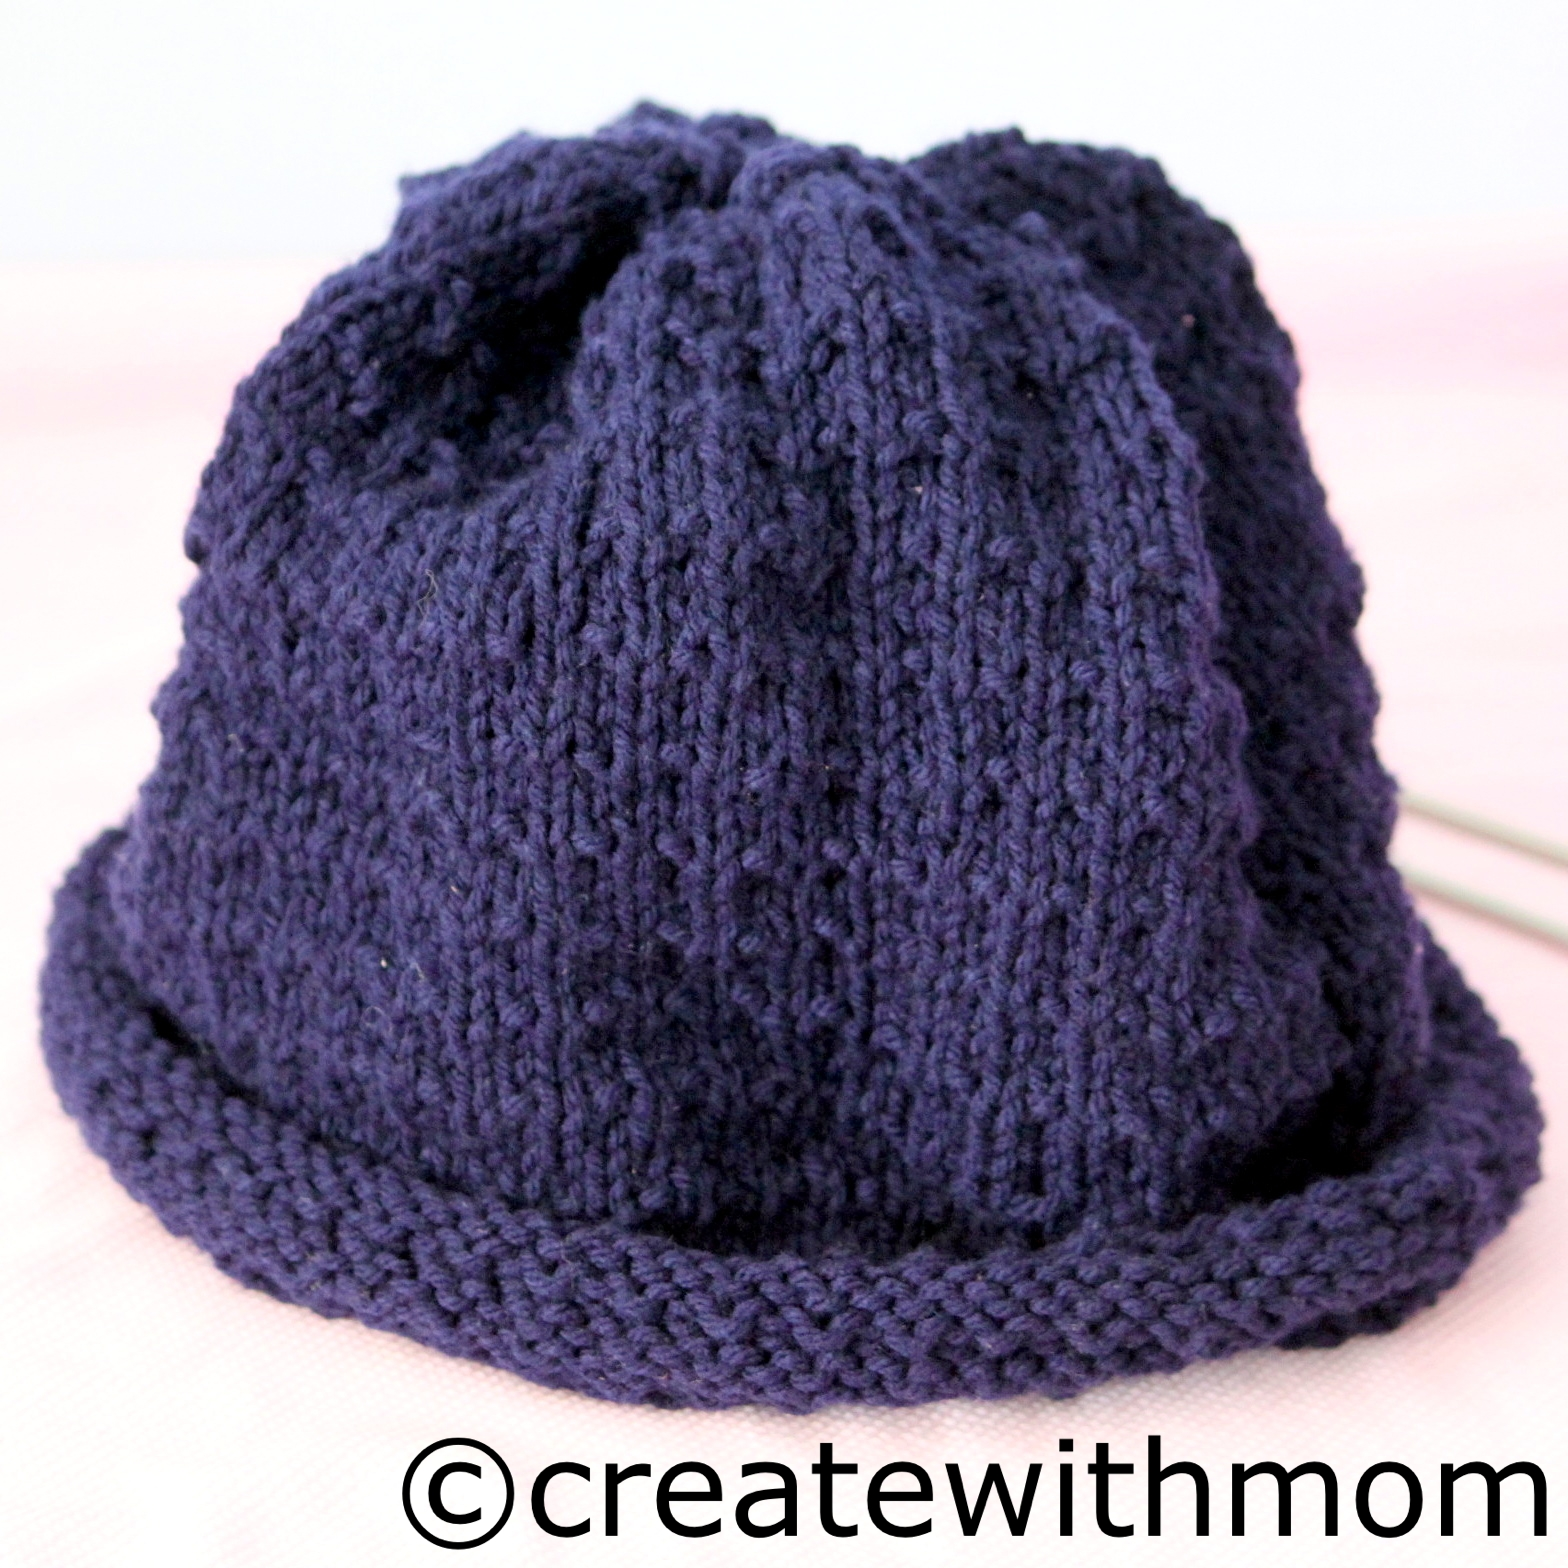 Knitting Patterns Hats On Straight Needles : Create With Mom: Knit hat